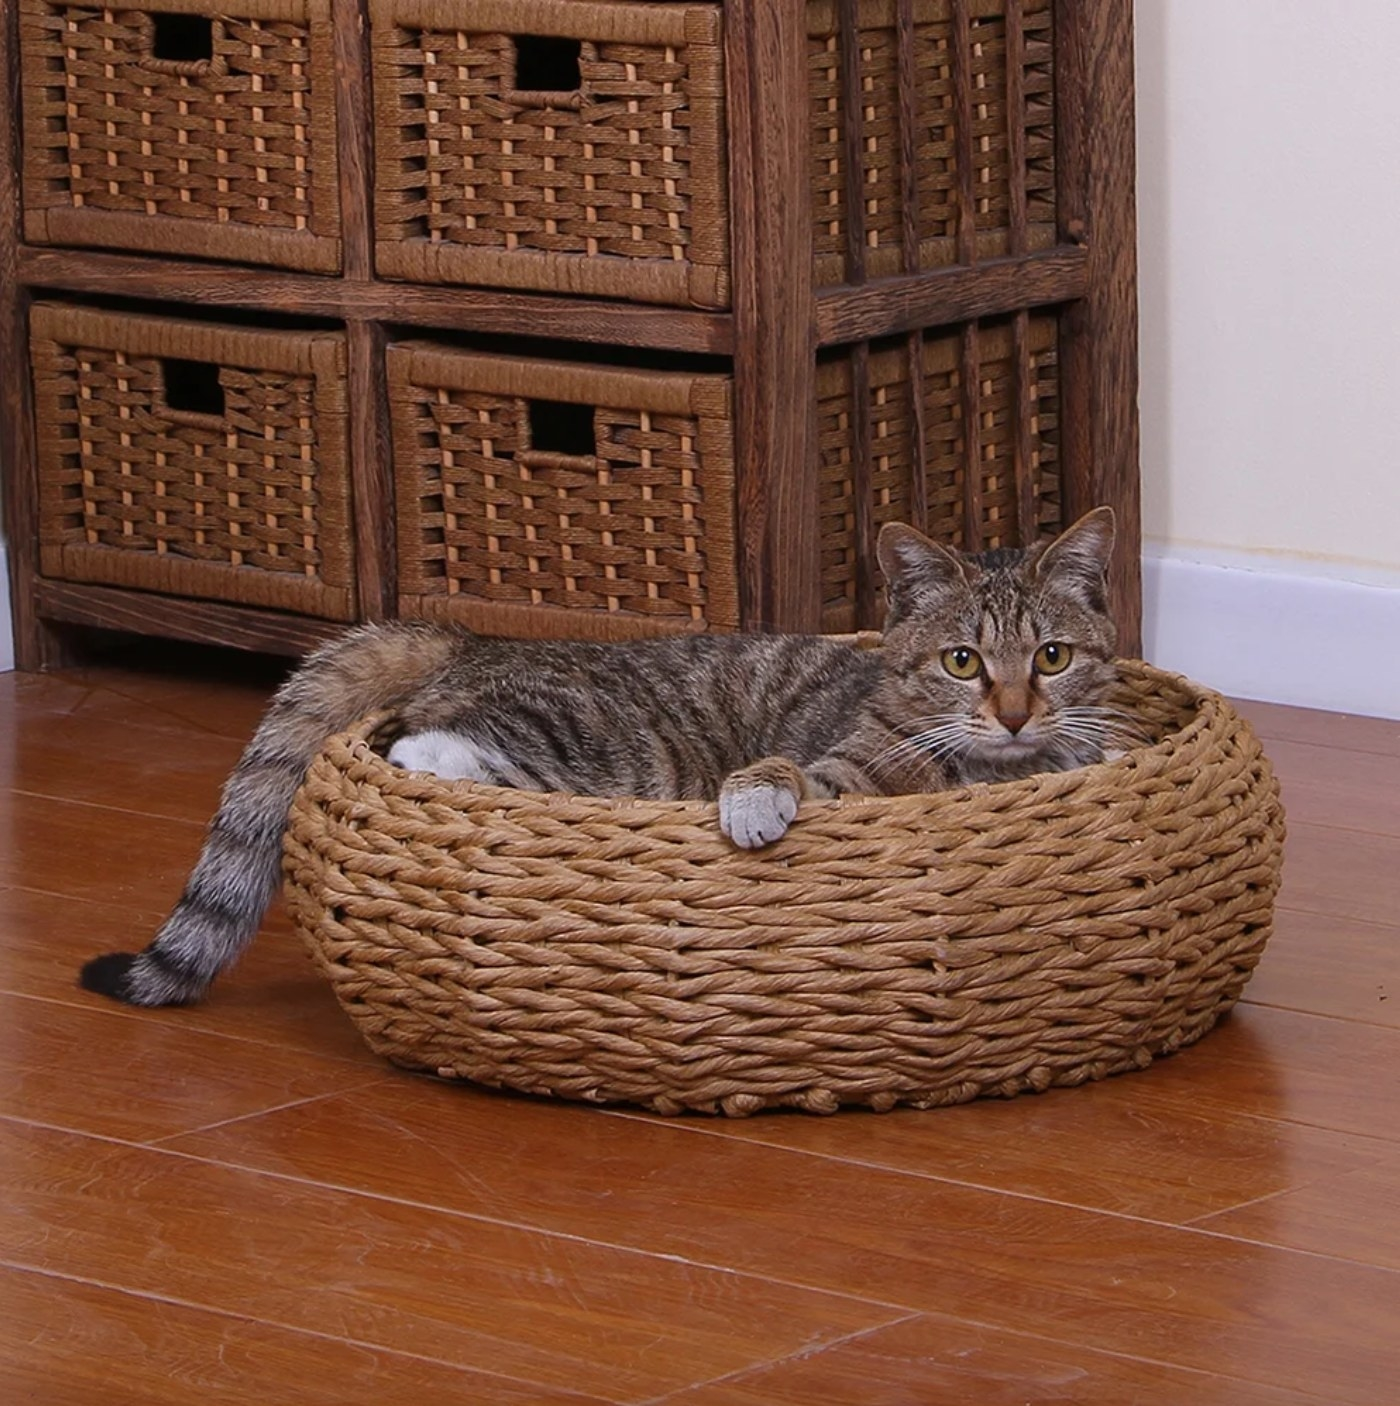 The rope cat bed